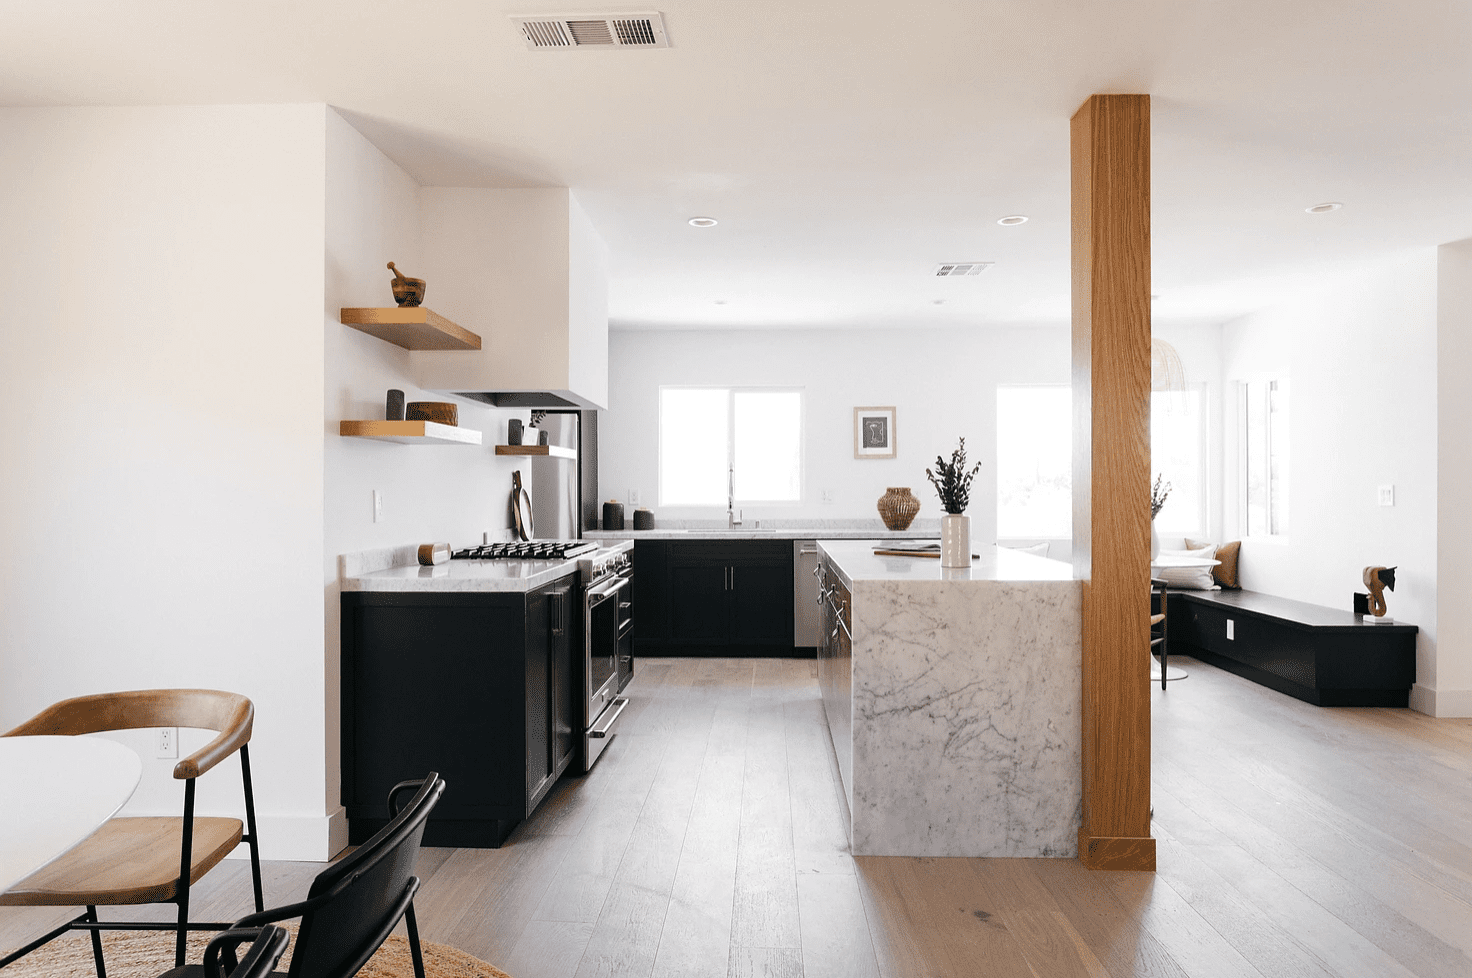 A kitchen with a marble bar next to a wood column